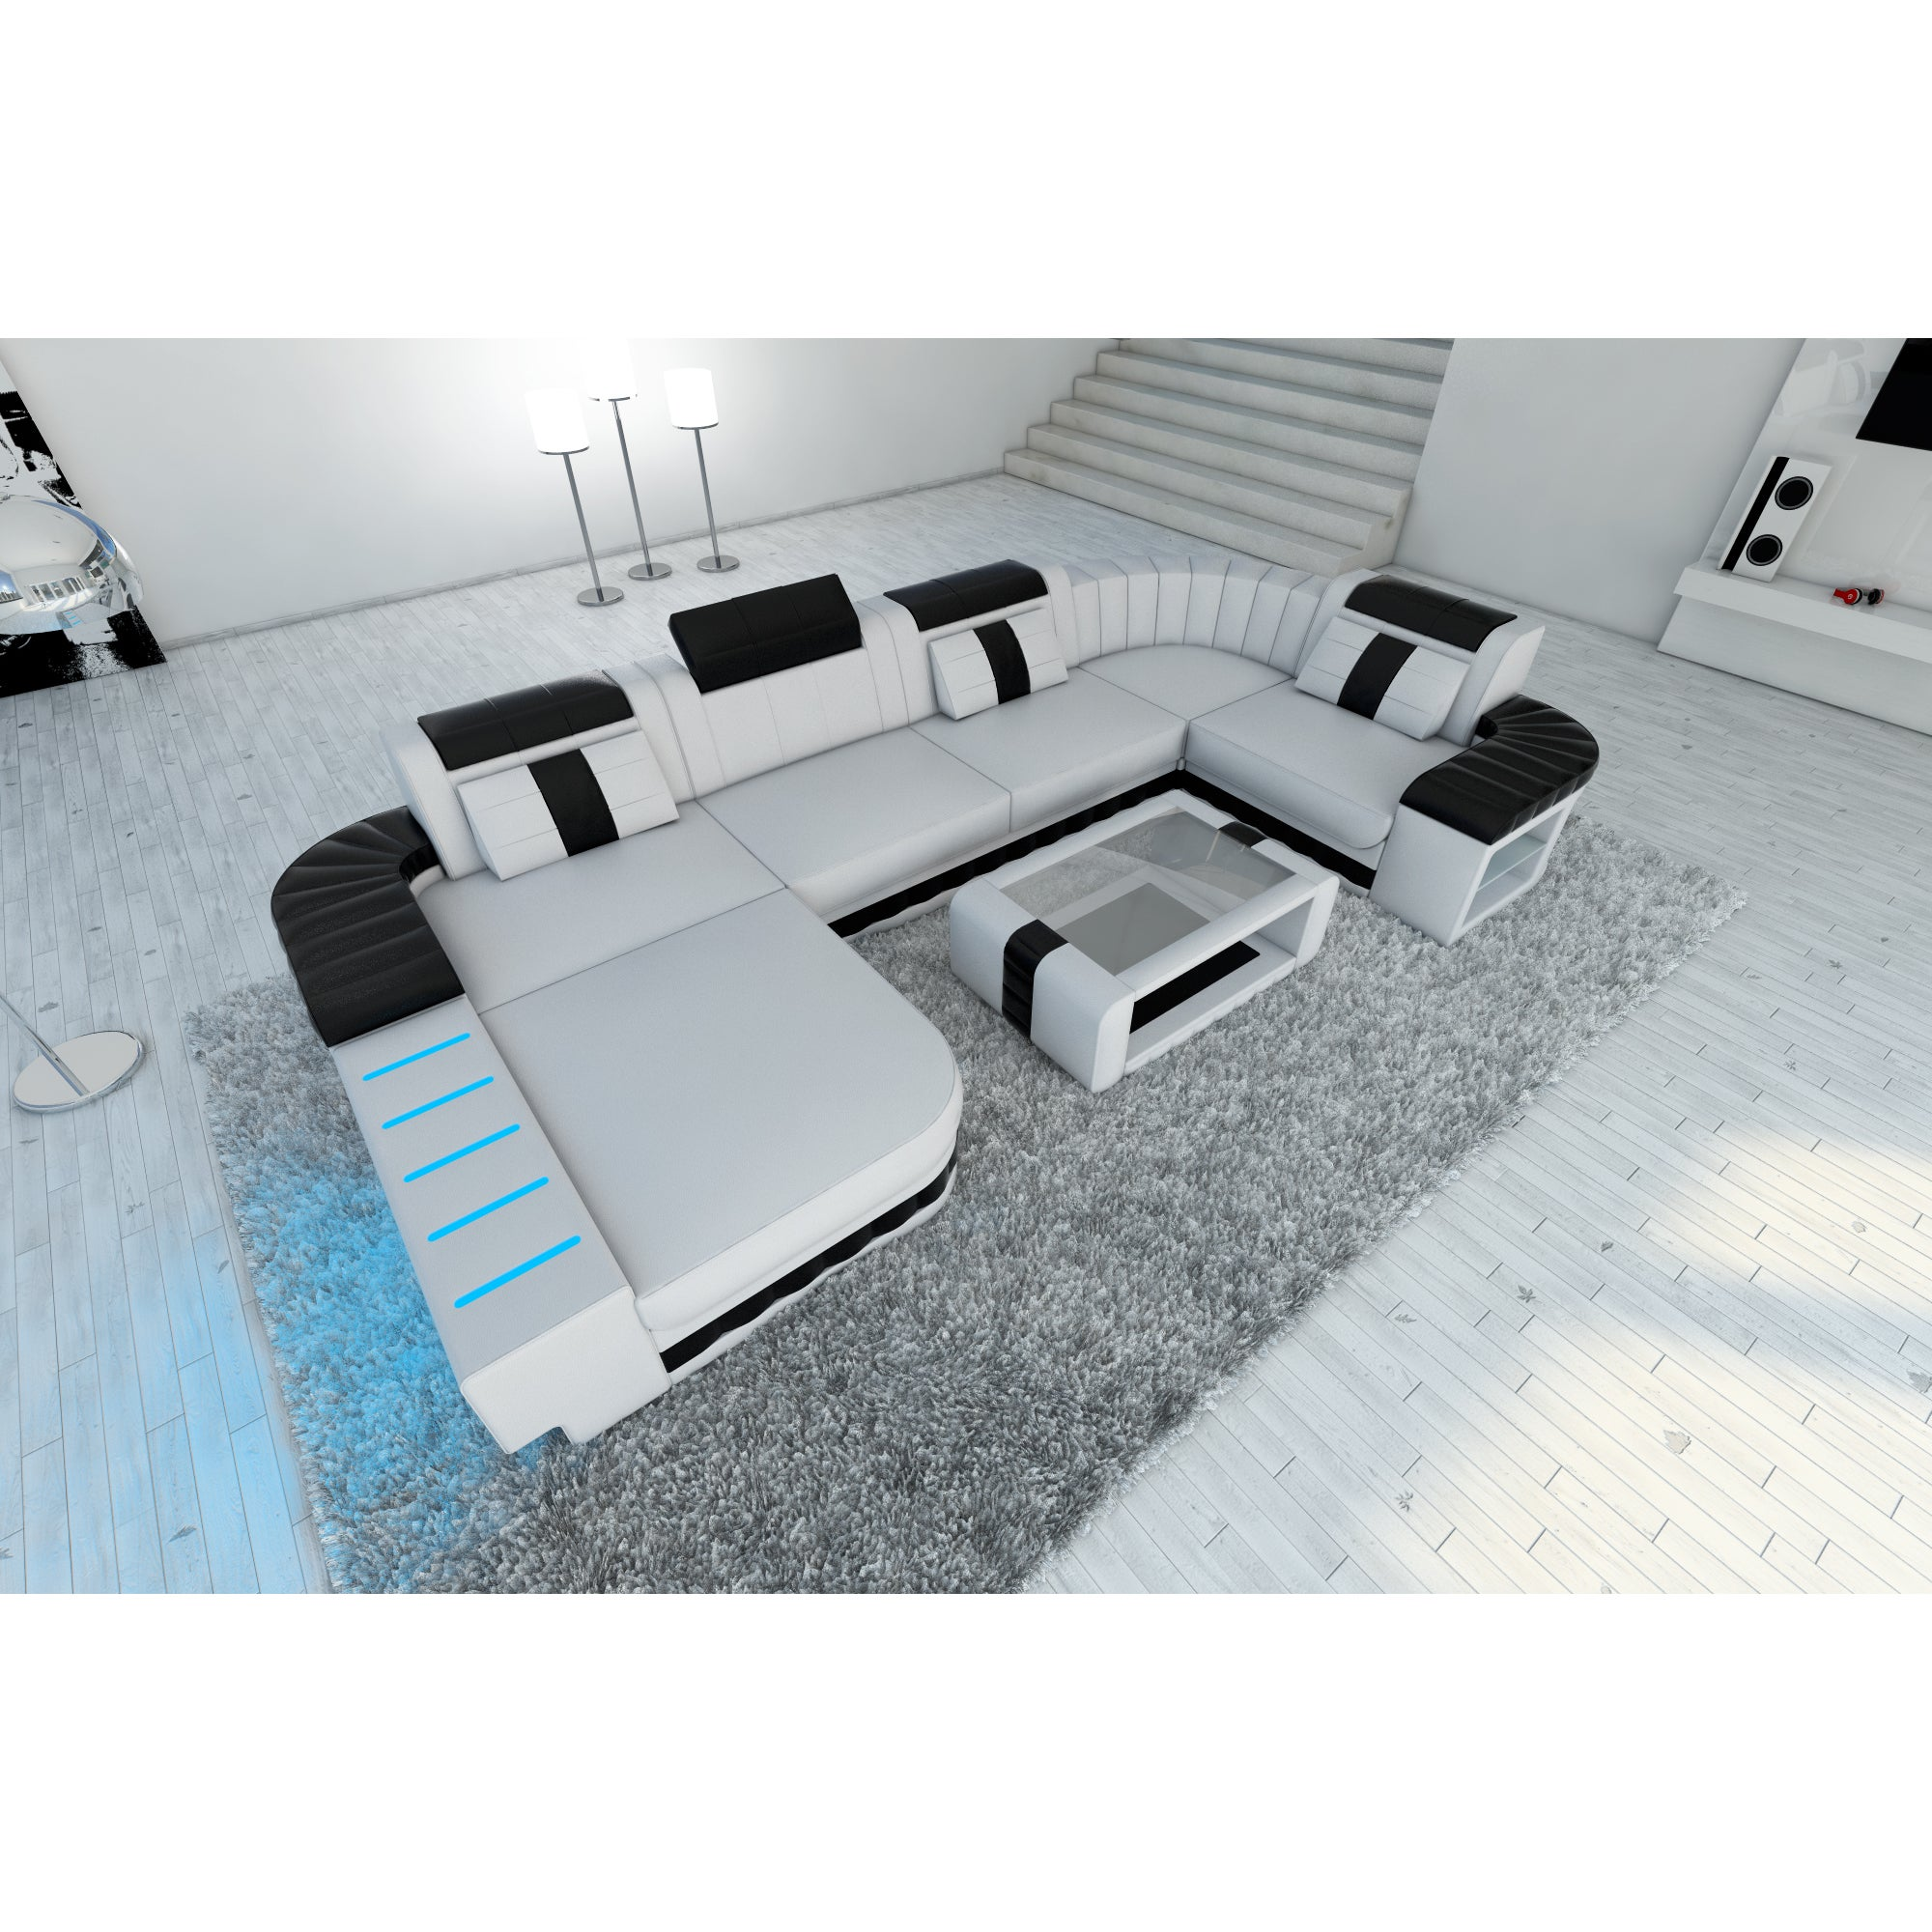 Fine Boston Led Lights White Leather U Shaped Sectional Sofa Pabps2019 Chair Design Images Pabps2019Com